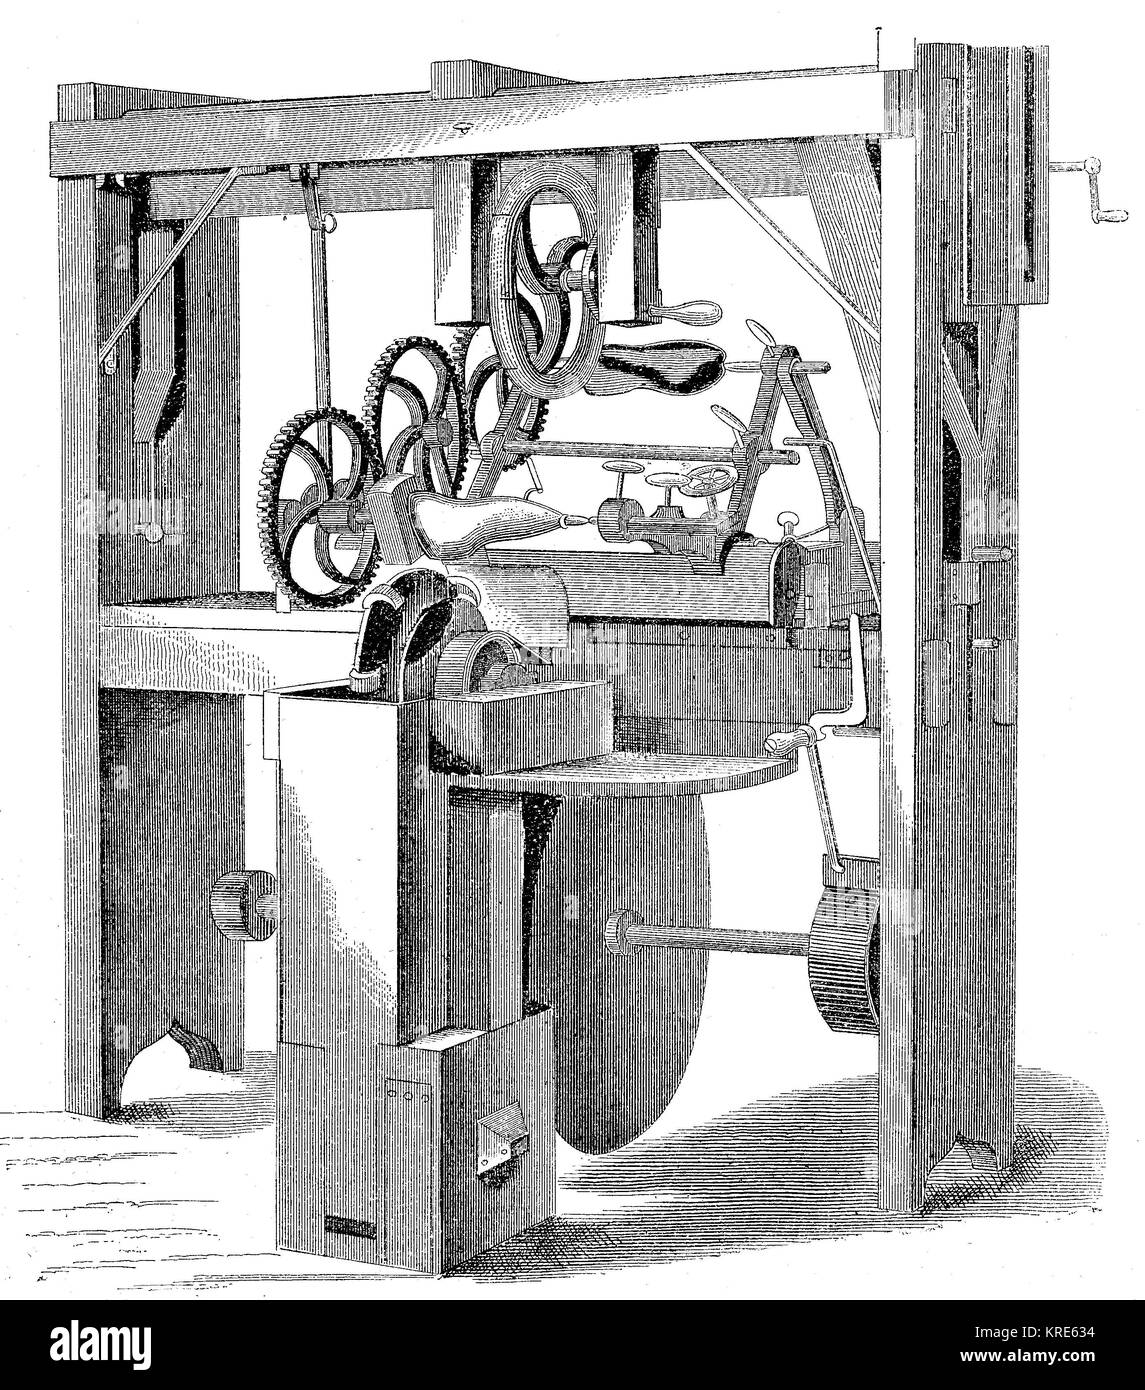 Machine for the automatic production of shoe lasts from J. W. Town, digital improved reproduction of a woodcut from - Stock Image